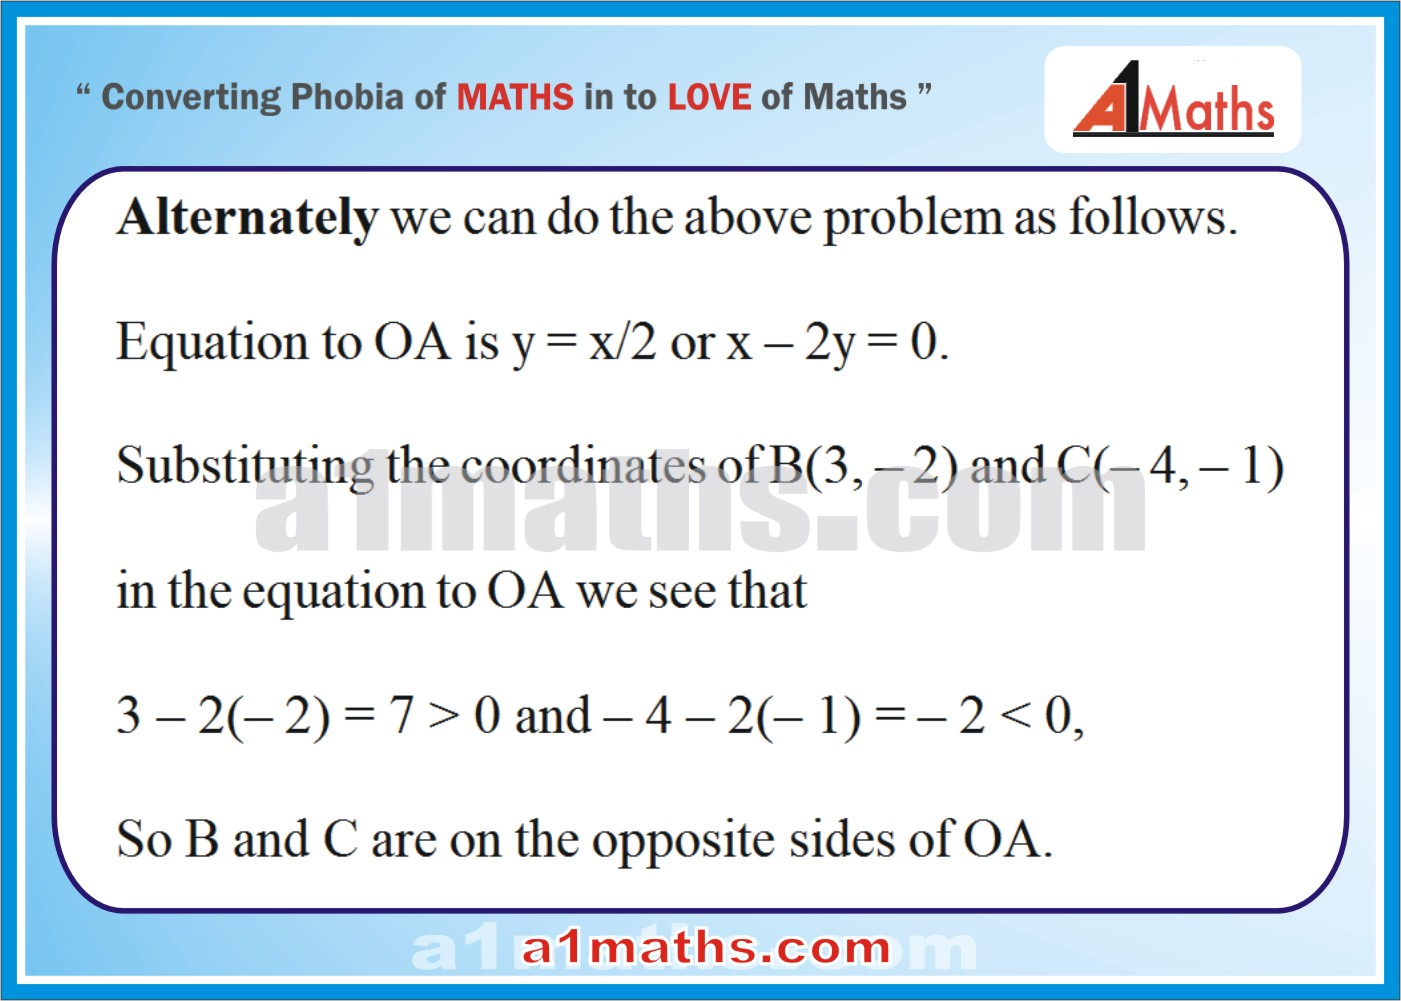 olved Examples-3-3- Straight Line-Coordinate Geometry-IIT-JEE Maths-Mains-Advanced-Free Study Material-